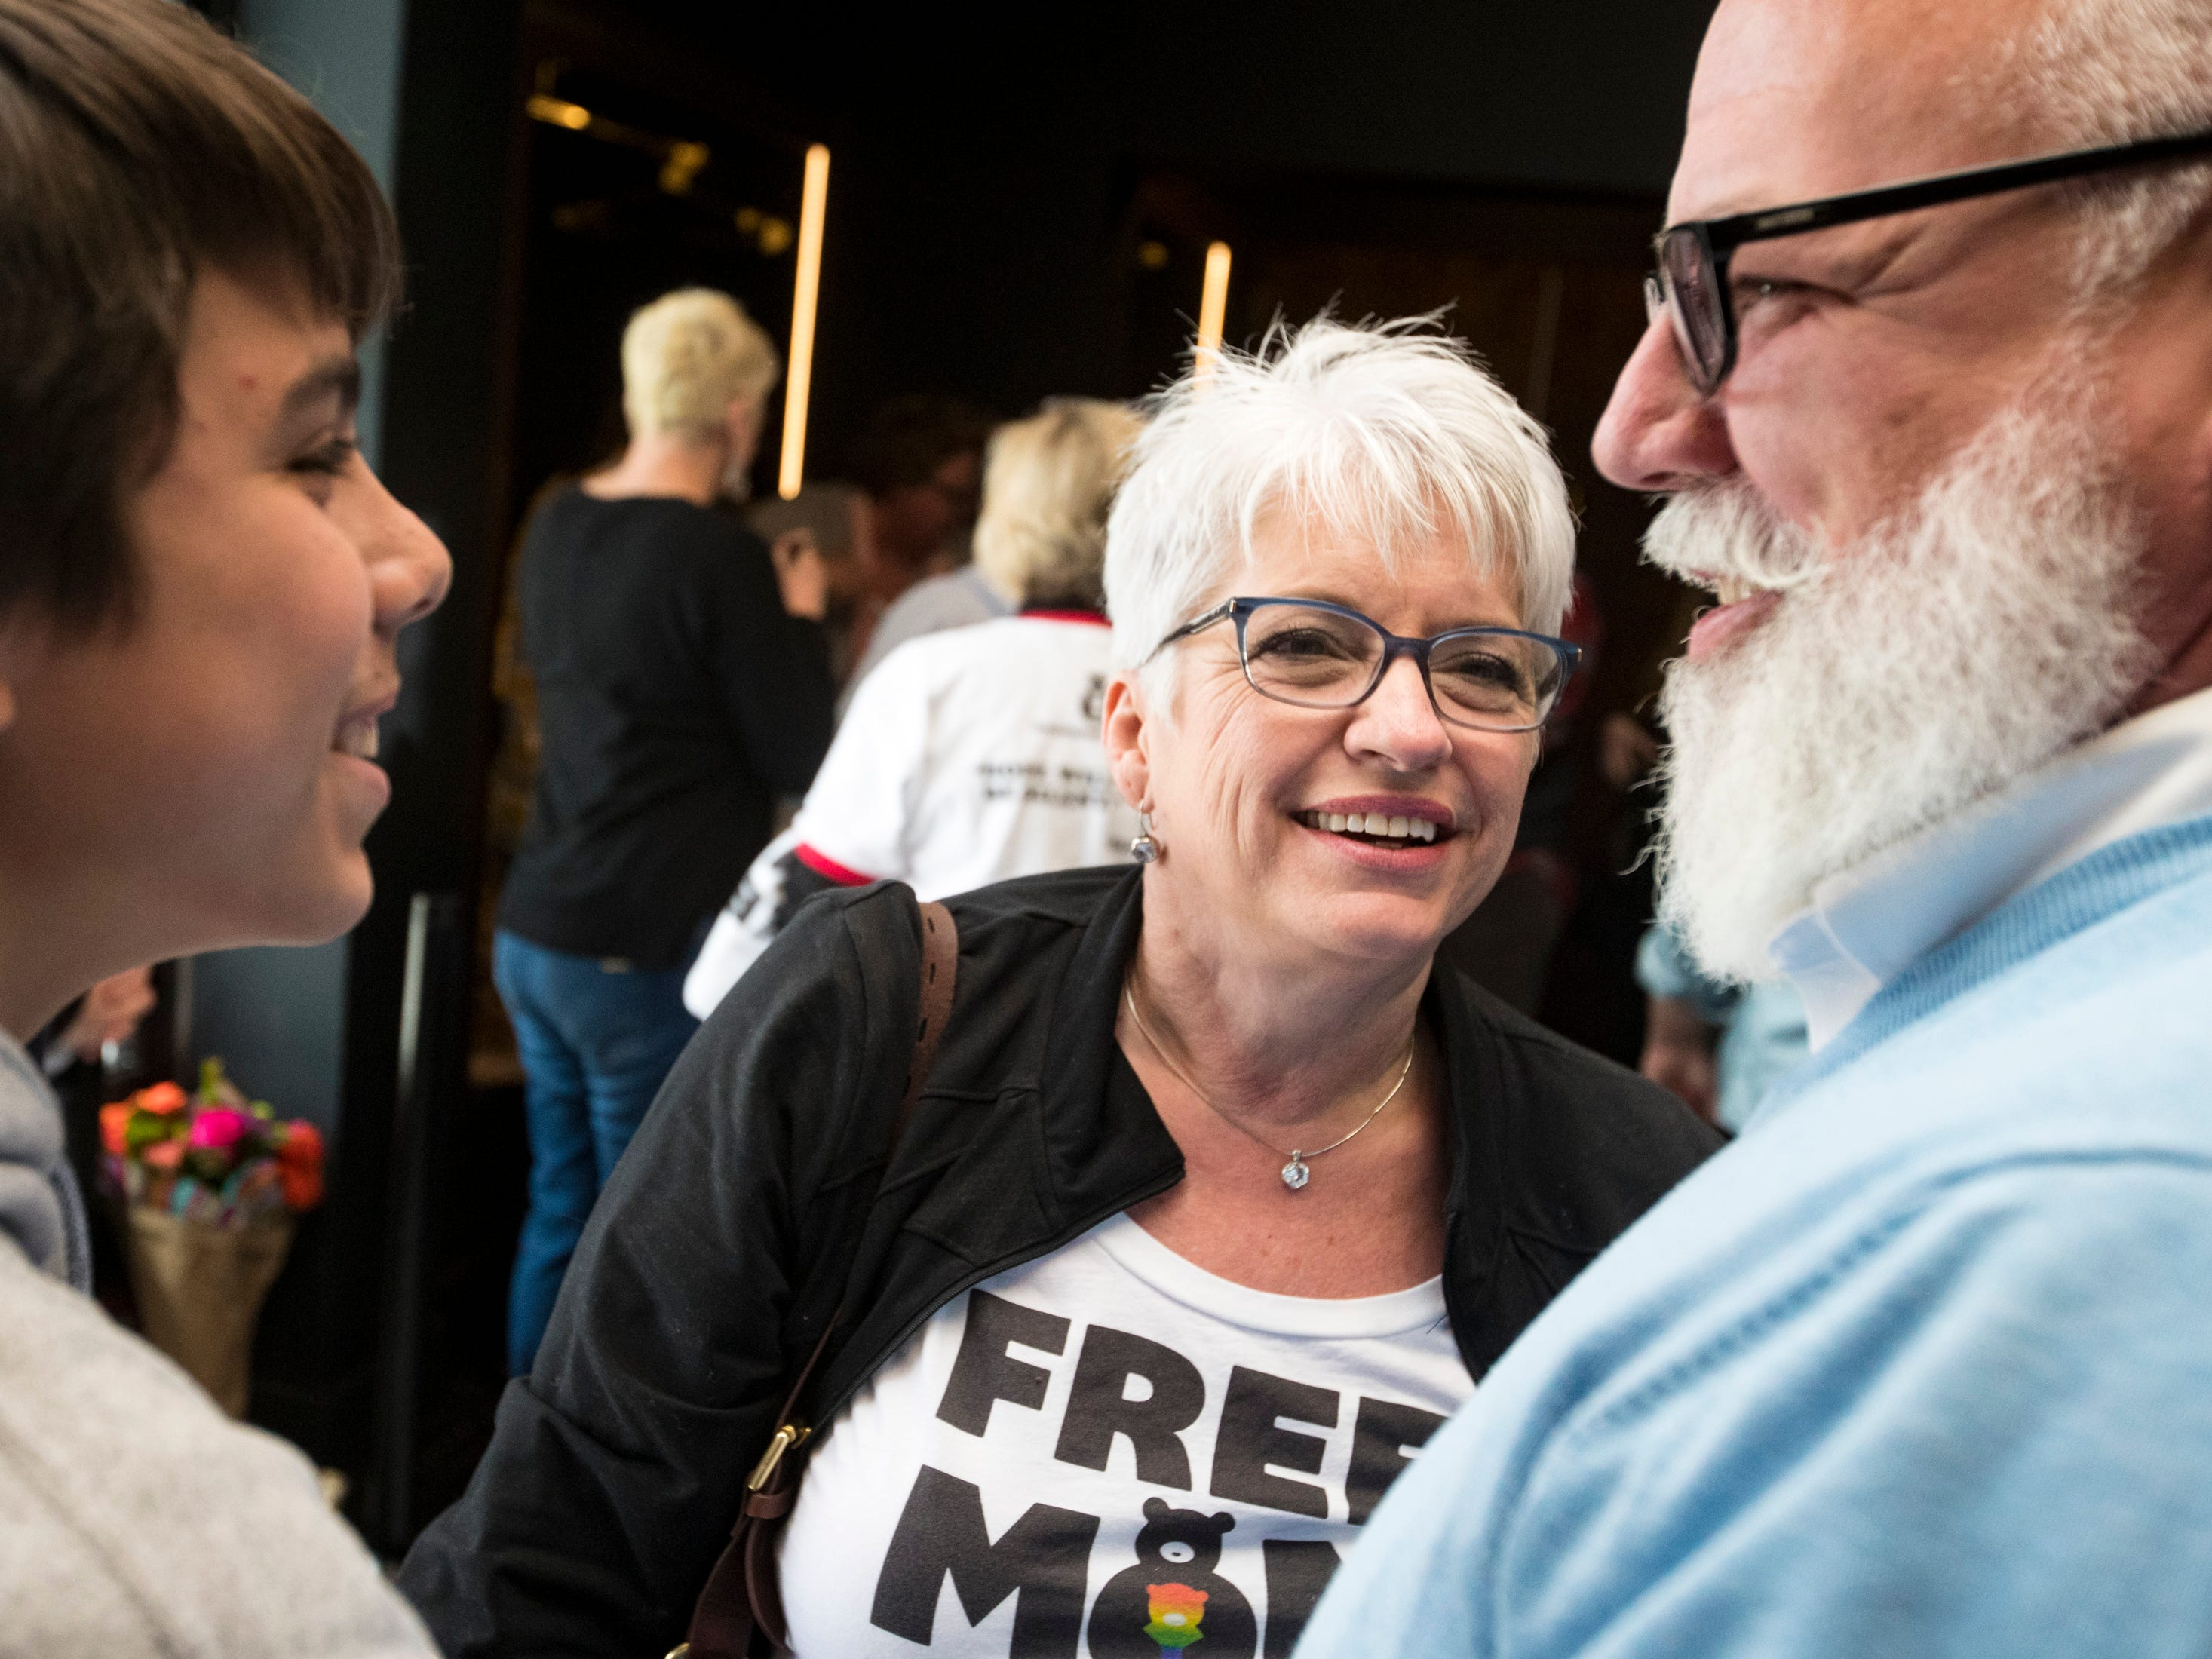 Kelly Holiday speaks to Butch Wright and Landy Wright, 14, after Sara Cunningham spoke at GracePointe Church in Nashville on Sunday, March 31, 2019. Cunningham spoke about her journey to accepting her son as a gay man while keeping her faith.